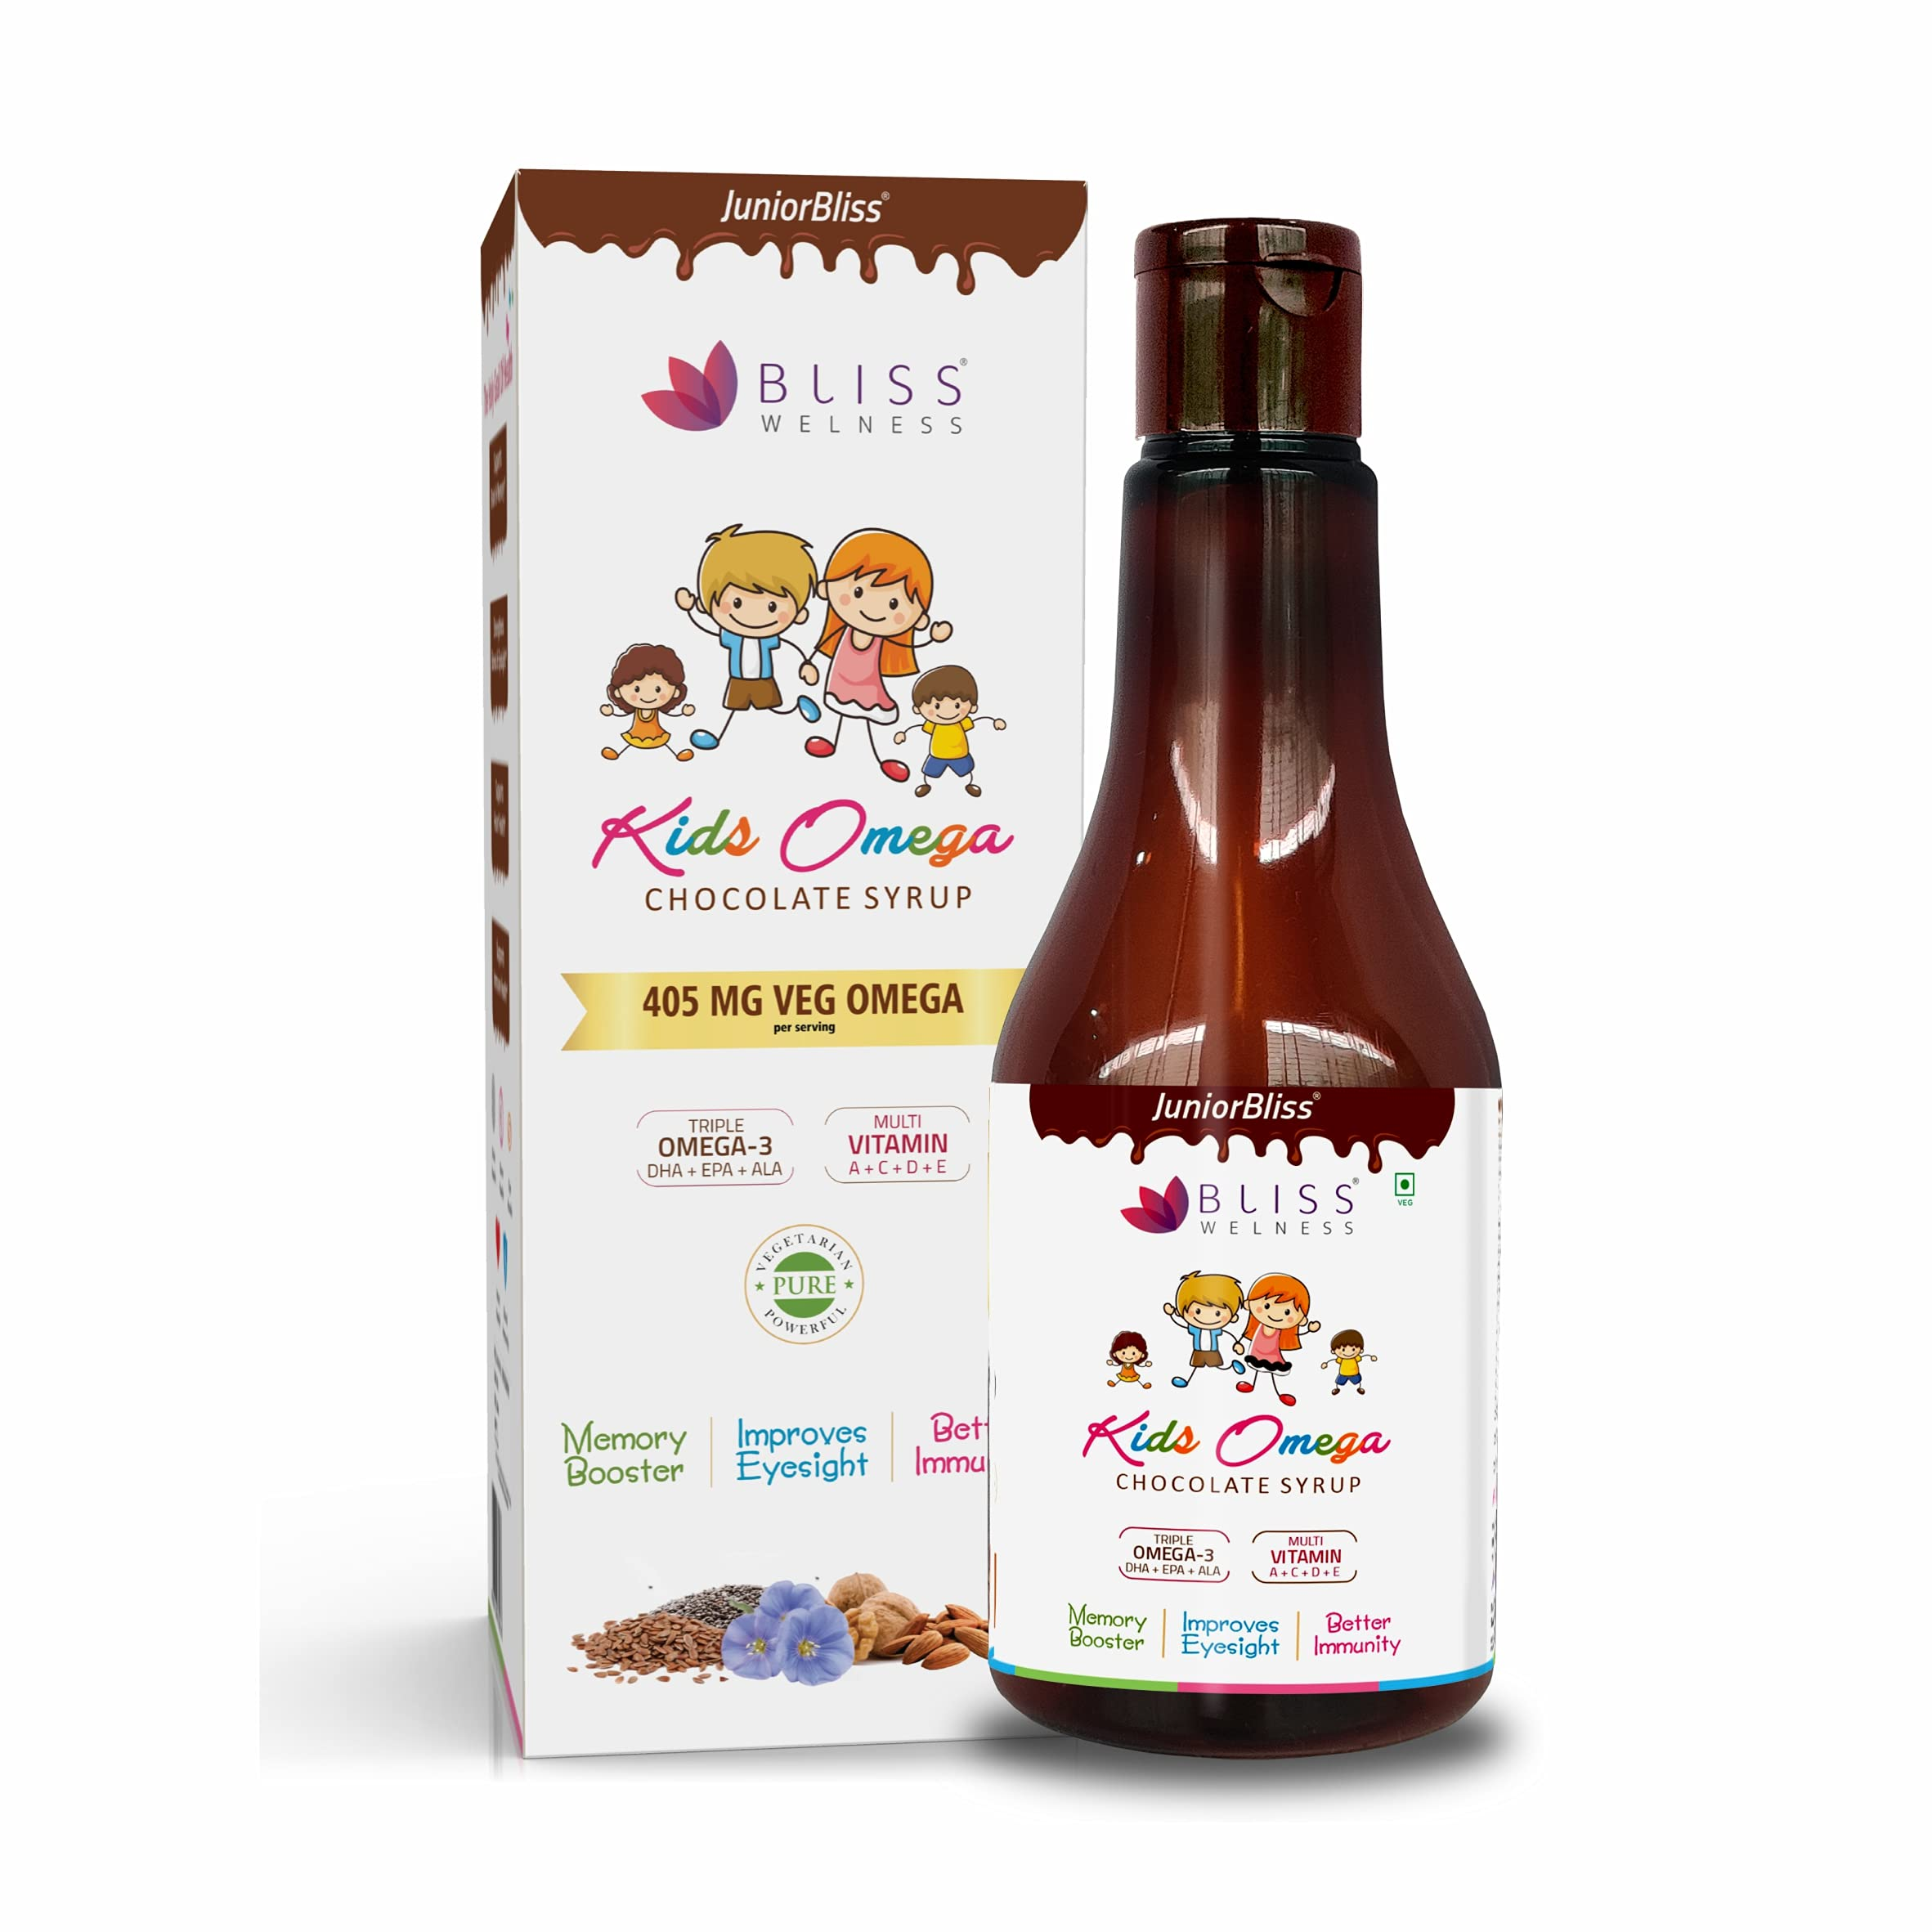 Bliss Welness Junior Bliss Kids Omega 3 6 9 with Omega 3 300MG (DHA 100mg EPA 30mg ALA 170mg) Vitamin A C D E Multivitamin Supplement  Chocolate Flavor Syrup